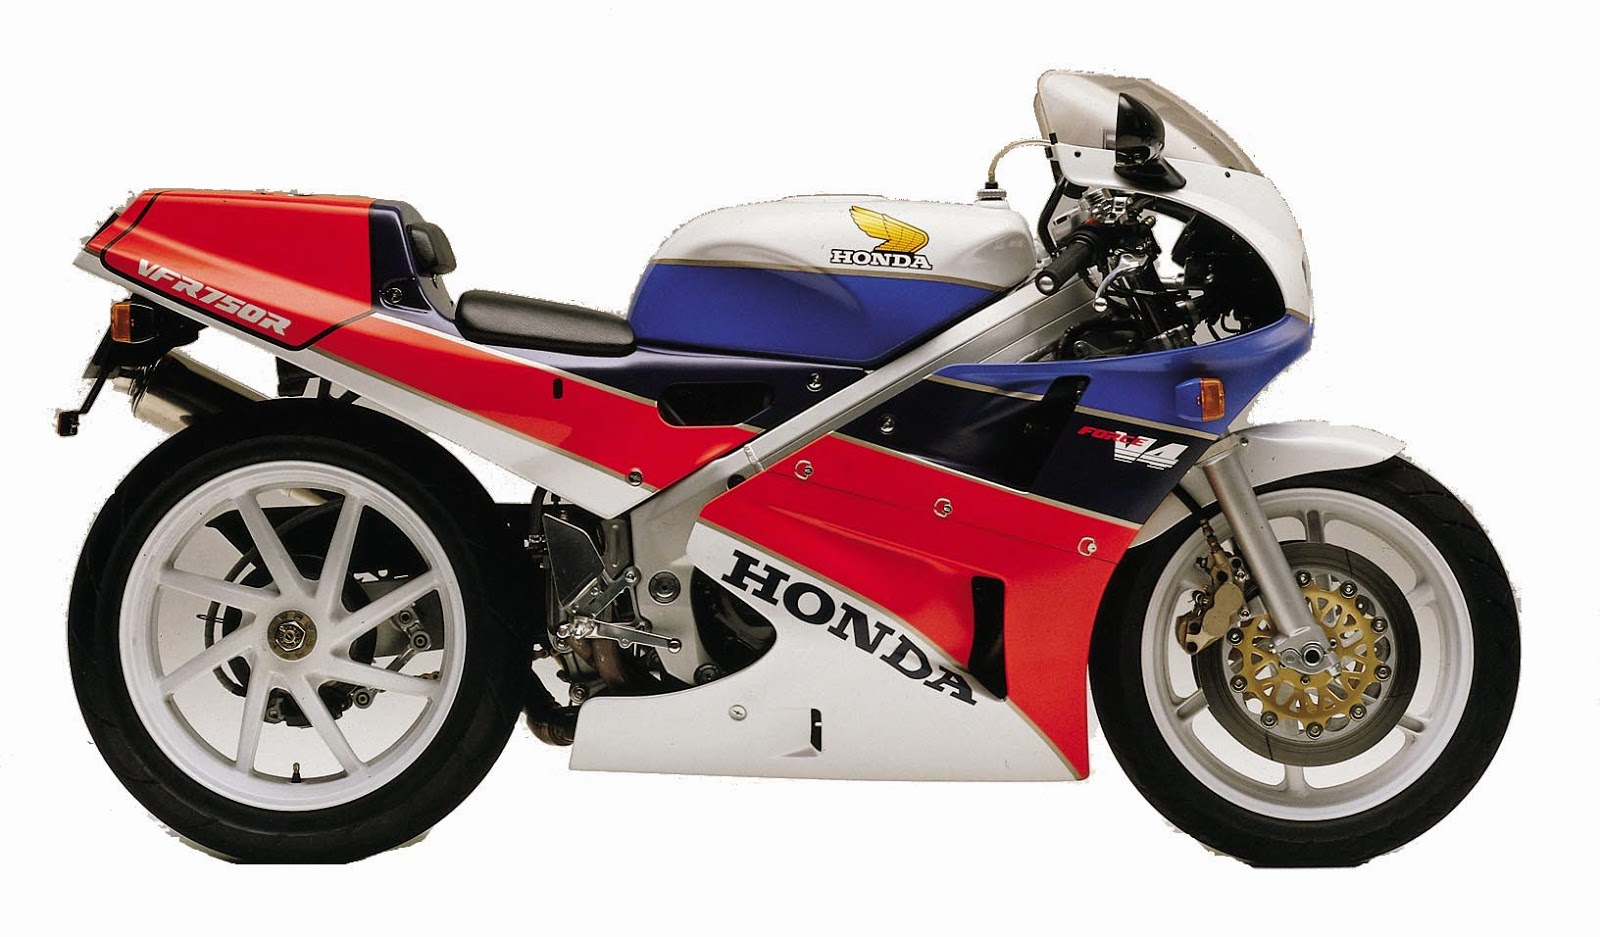 Honda RC30 pictures and wallpapers gallery